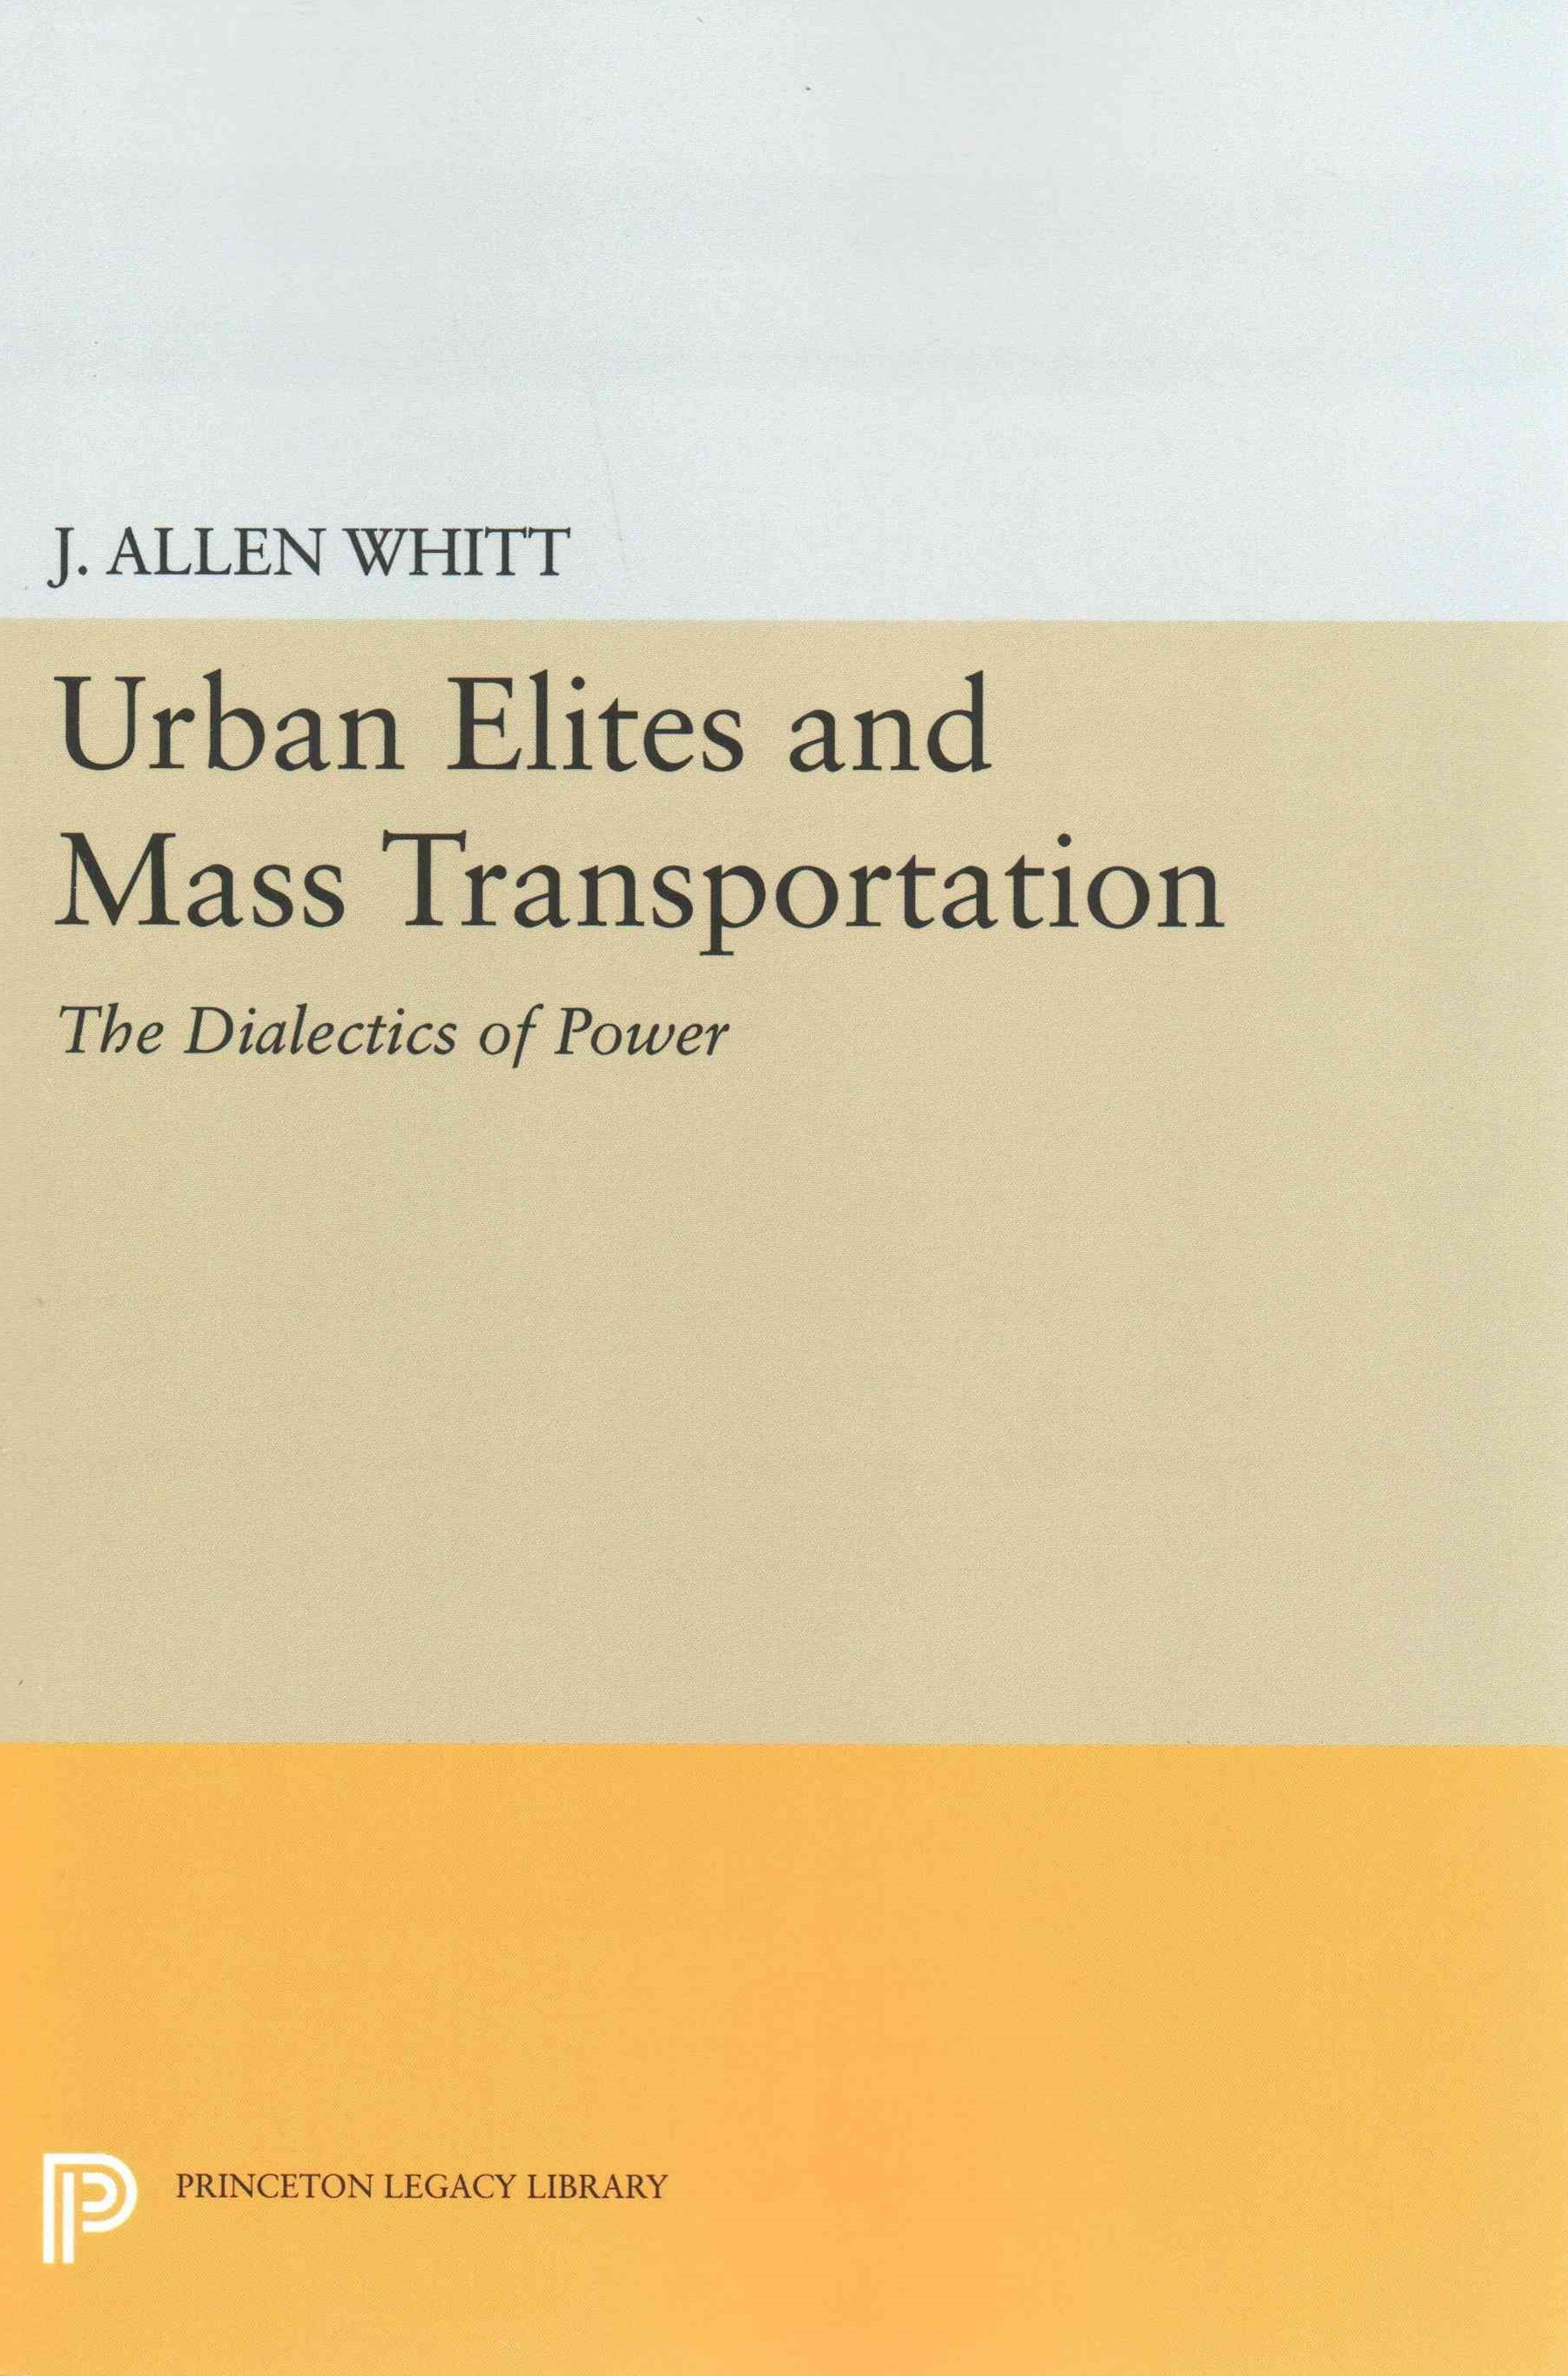 Urban Elites and Mass Transportation